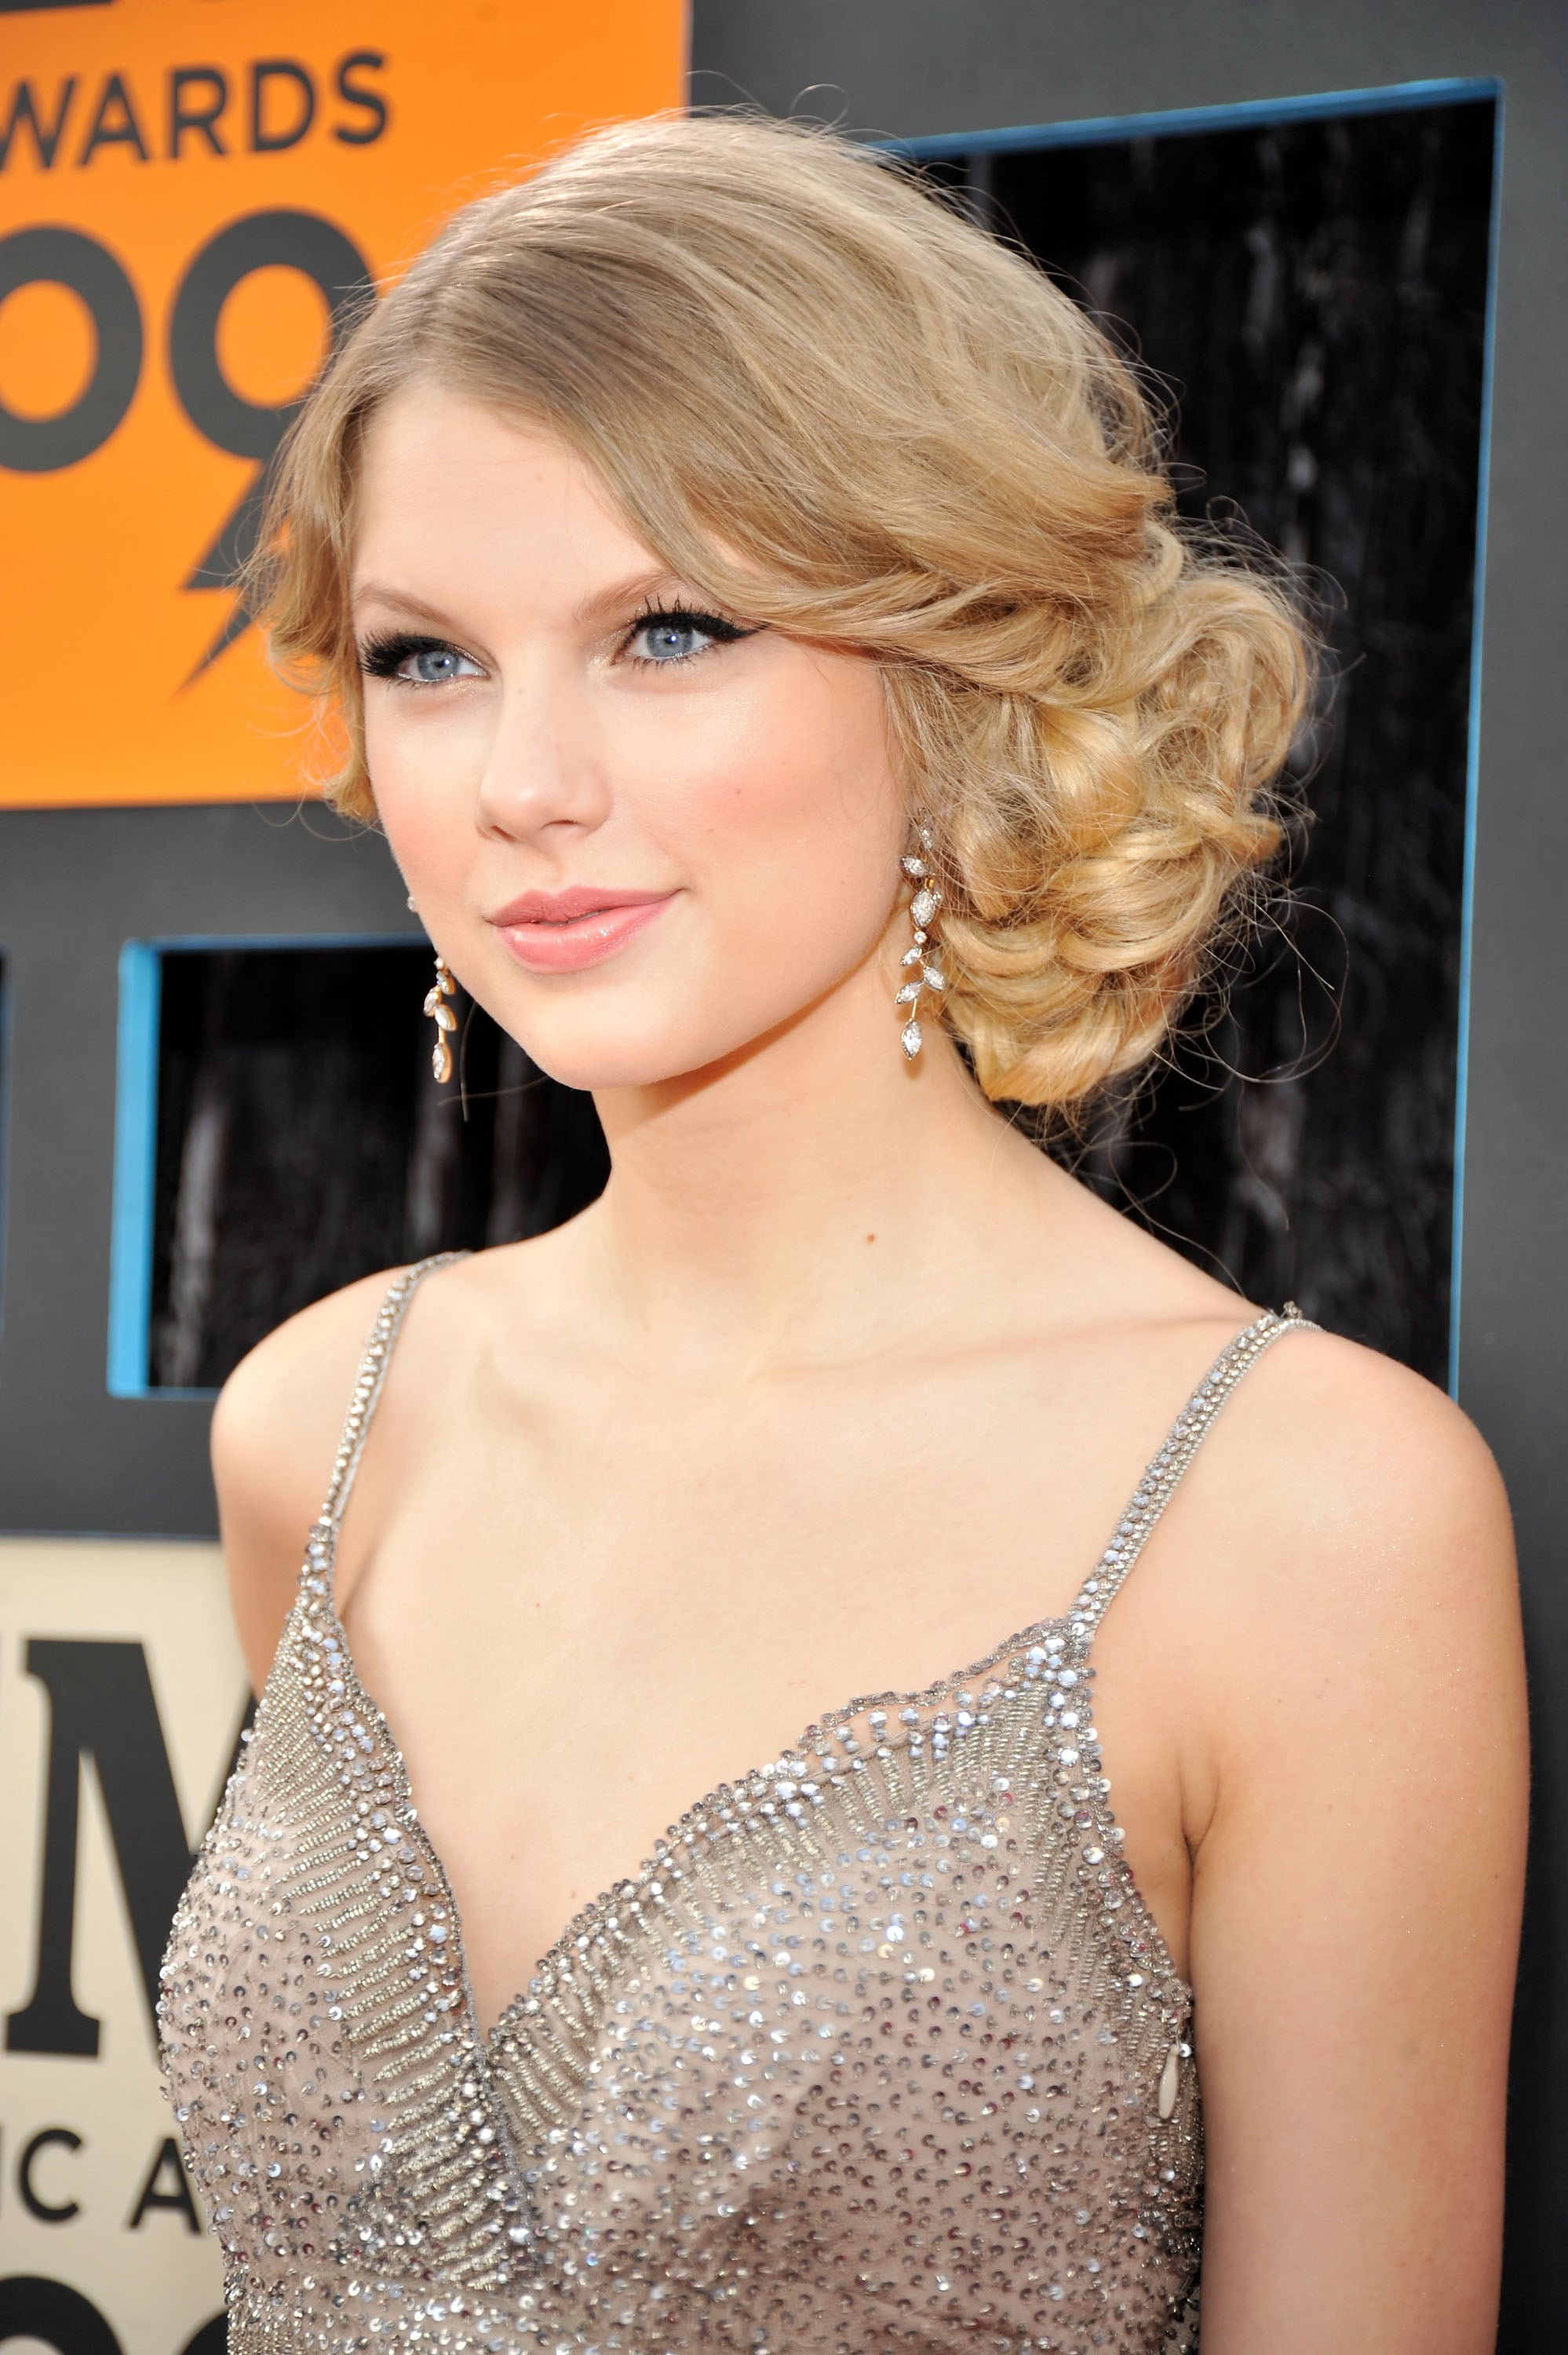 Taylor Swift In 2009 15 Of The All Time Best Hair Looks From The Cmt Music Awards Popsugar Beauty Photo 3